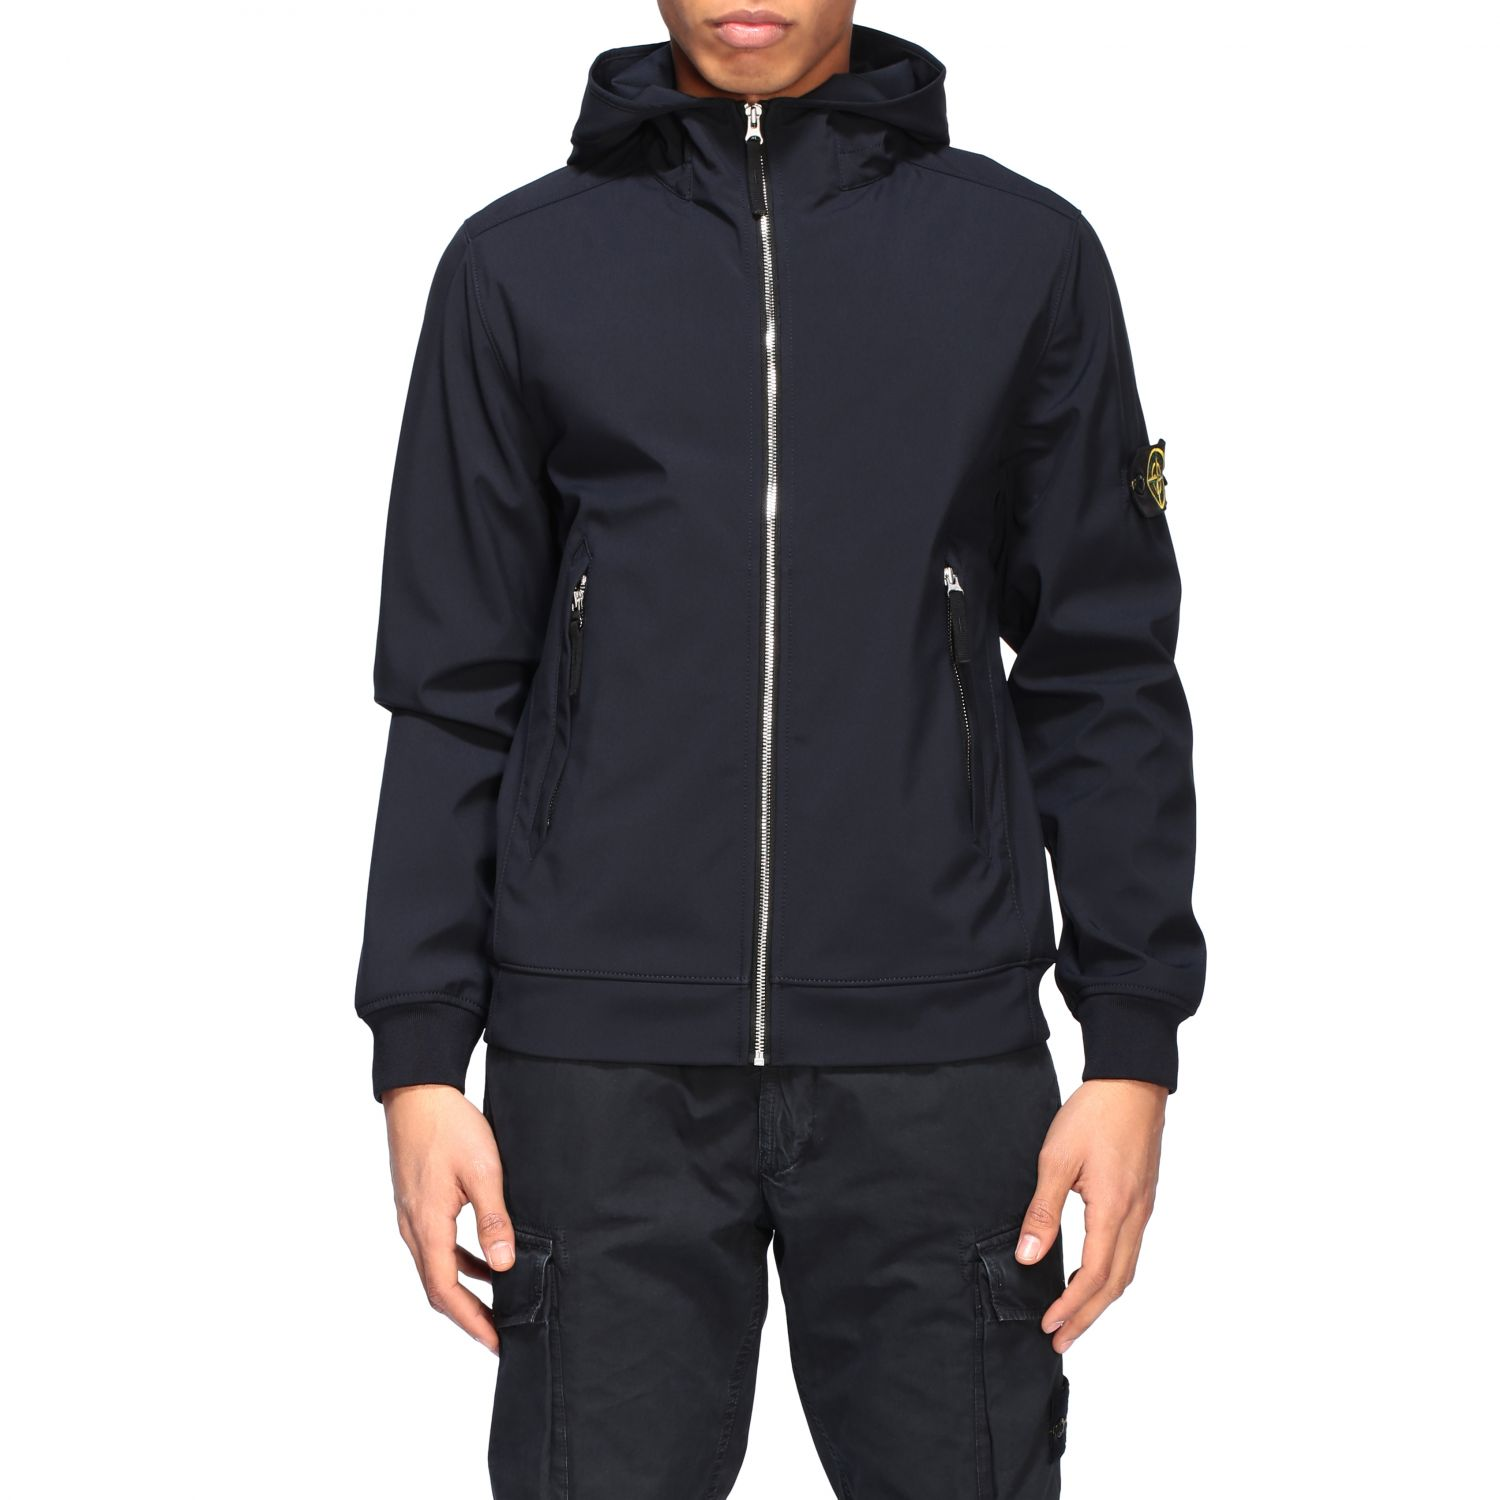 Stone Island soft shell light jacket with hood navy 1